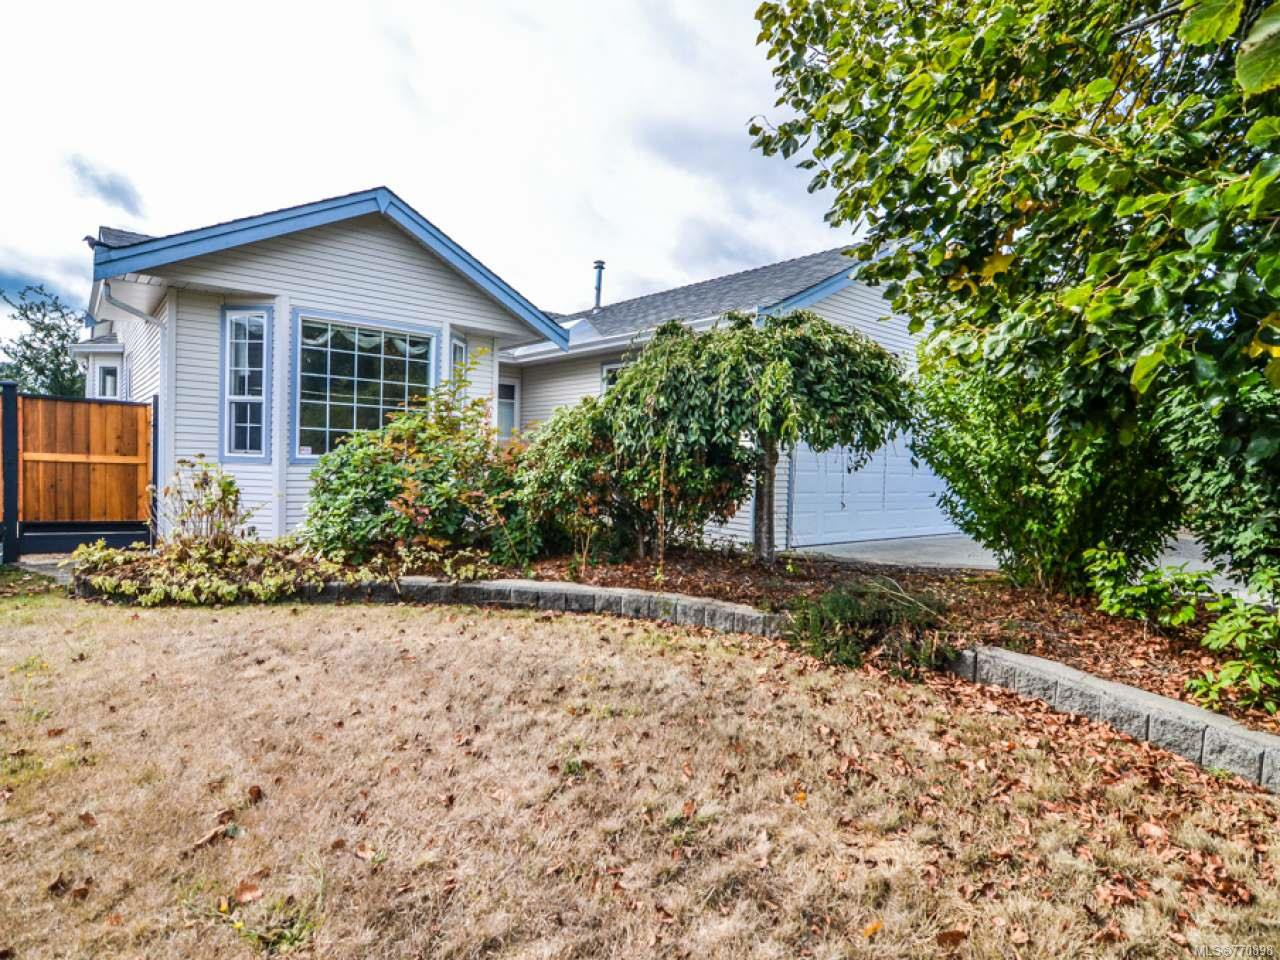 Photo 20: Photos: 135 Colorado Dr in CAMPBELL RIVER: CR Willow Point House for sale (Campbell River)  : MLS®# 770898